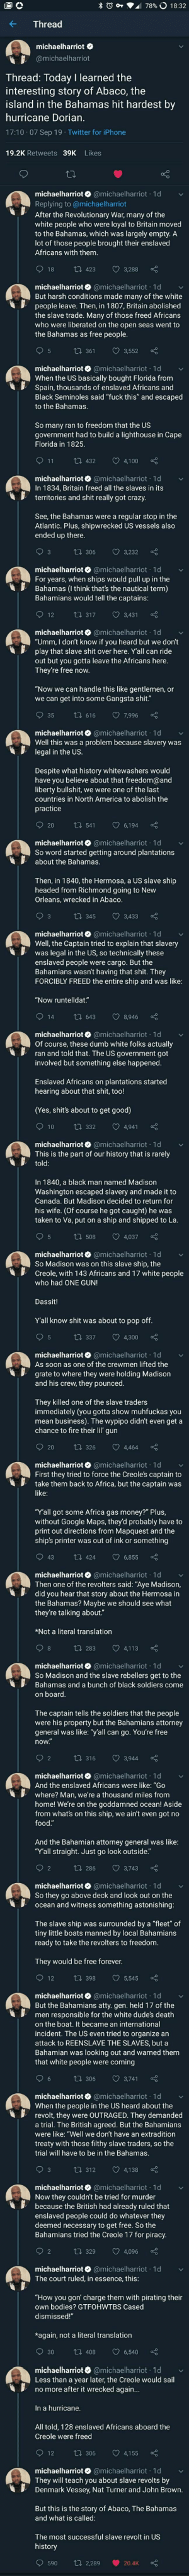 """A beautiful history lesson: 78% O 18:32  Thread  michaelharriot  @michaelharriot  Thread: Today I learned the  interesting story of Abaco, the  island in the Bahamas hit hardest by  hurricane Dorian.  17:10 07 Sep 19 Twitter for iPhone  Likes  19.2K Retweets 39K  michaelharriot @michaelharriot 1d  Replying to @michaelharriot  After the Revolutionary War, many of the  white people who were loyal to Britain moved  to the Bahamas, which was largely empty. A  lot of those people brought their enslaved  Africans with them.  LI 423  18  3,288  michaelharriot @michaelharriot 1d  But harsh conditions made many of the white  people leave. Then, in 1807, Britain abolished  the slave trade. Many of those freed Africans  who were liberated on the open seas went to  the Bahamas as free people.  LI 361  3,552  5  michaelharriot @michaelharriot 1d  When the US basically bought Florida from  Spain, thousands of enslaved Africans and  Black Seminoles said """"fuck this"""" and escaped  to the Bahamas.  So many ran to freedom that the US  government had to build a lighthouse in Cape  Florida in 1825.  t 432  11  4,100  michaelharriot @michaelharriot 1d  In 1834, Britain freed all the slaves in its  territories and shit really got crazy  See, the Bahamas were a regular stop in the  Atlantic. Plus, shipwrecked US vessels also  ended up there.  ti 306  3,232  3  michaelharriot @michaelharriot 1d  For years, when ships would pull up in the  Bahamas (I think that's the nautical term)  Bahamians would tell the captains:  t317  12  3,43  michaelharriot @michaelharriot 1d  """"Umm, I don't know if you heard but we don't  play that slave shit over here. Y'all can ride  out but you gotta leave the Africans here.  They're free now.  """"Now we can handle this like gentlemen, or  we can get into some Gangsta shit.""""  ti 616  7,996  35  michaelharriot @michaelharriot 1d  Well this was a problem because slavery  legal in the US.  was  Despite what history whitewashers would  have you believe about that freedom"""